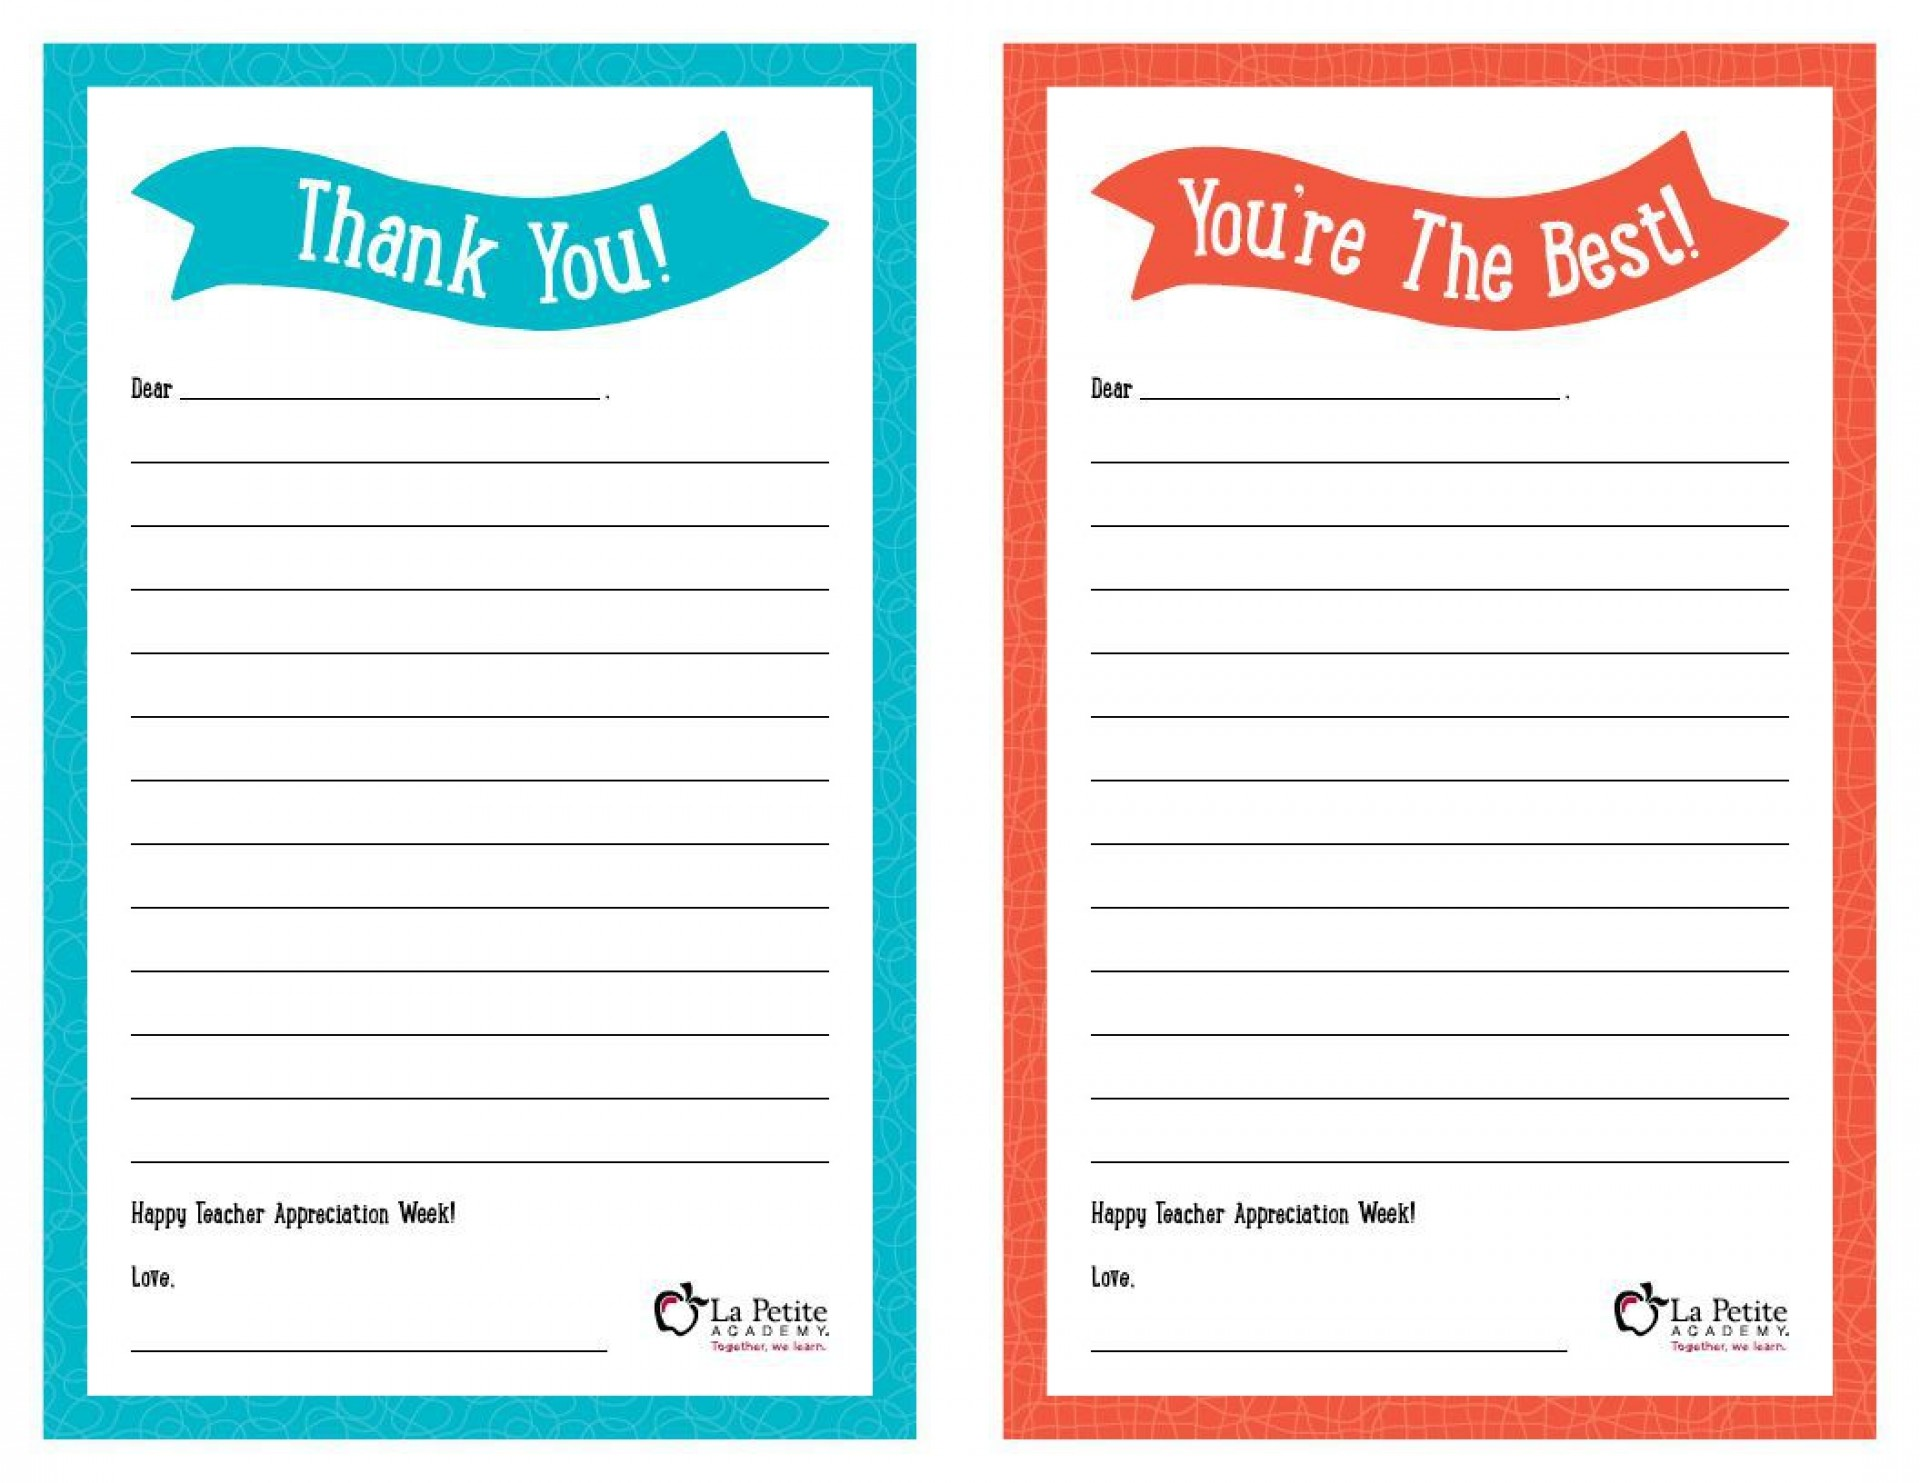 005 Frightening Free Thank You Note Template Word Idea  Card Download1920